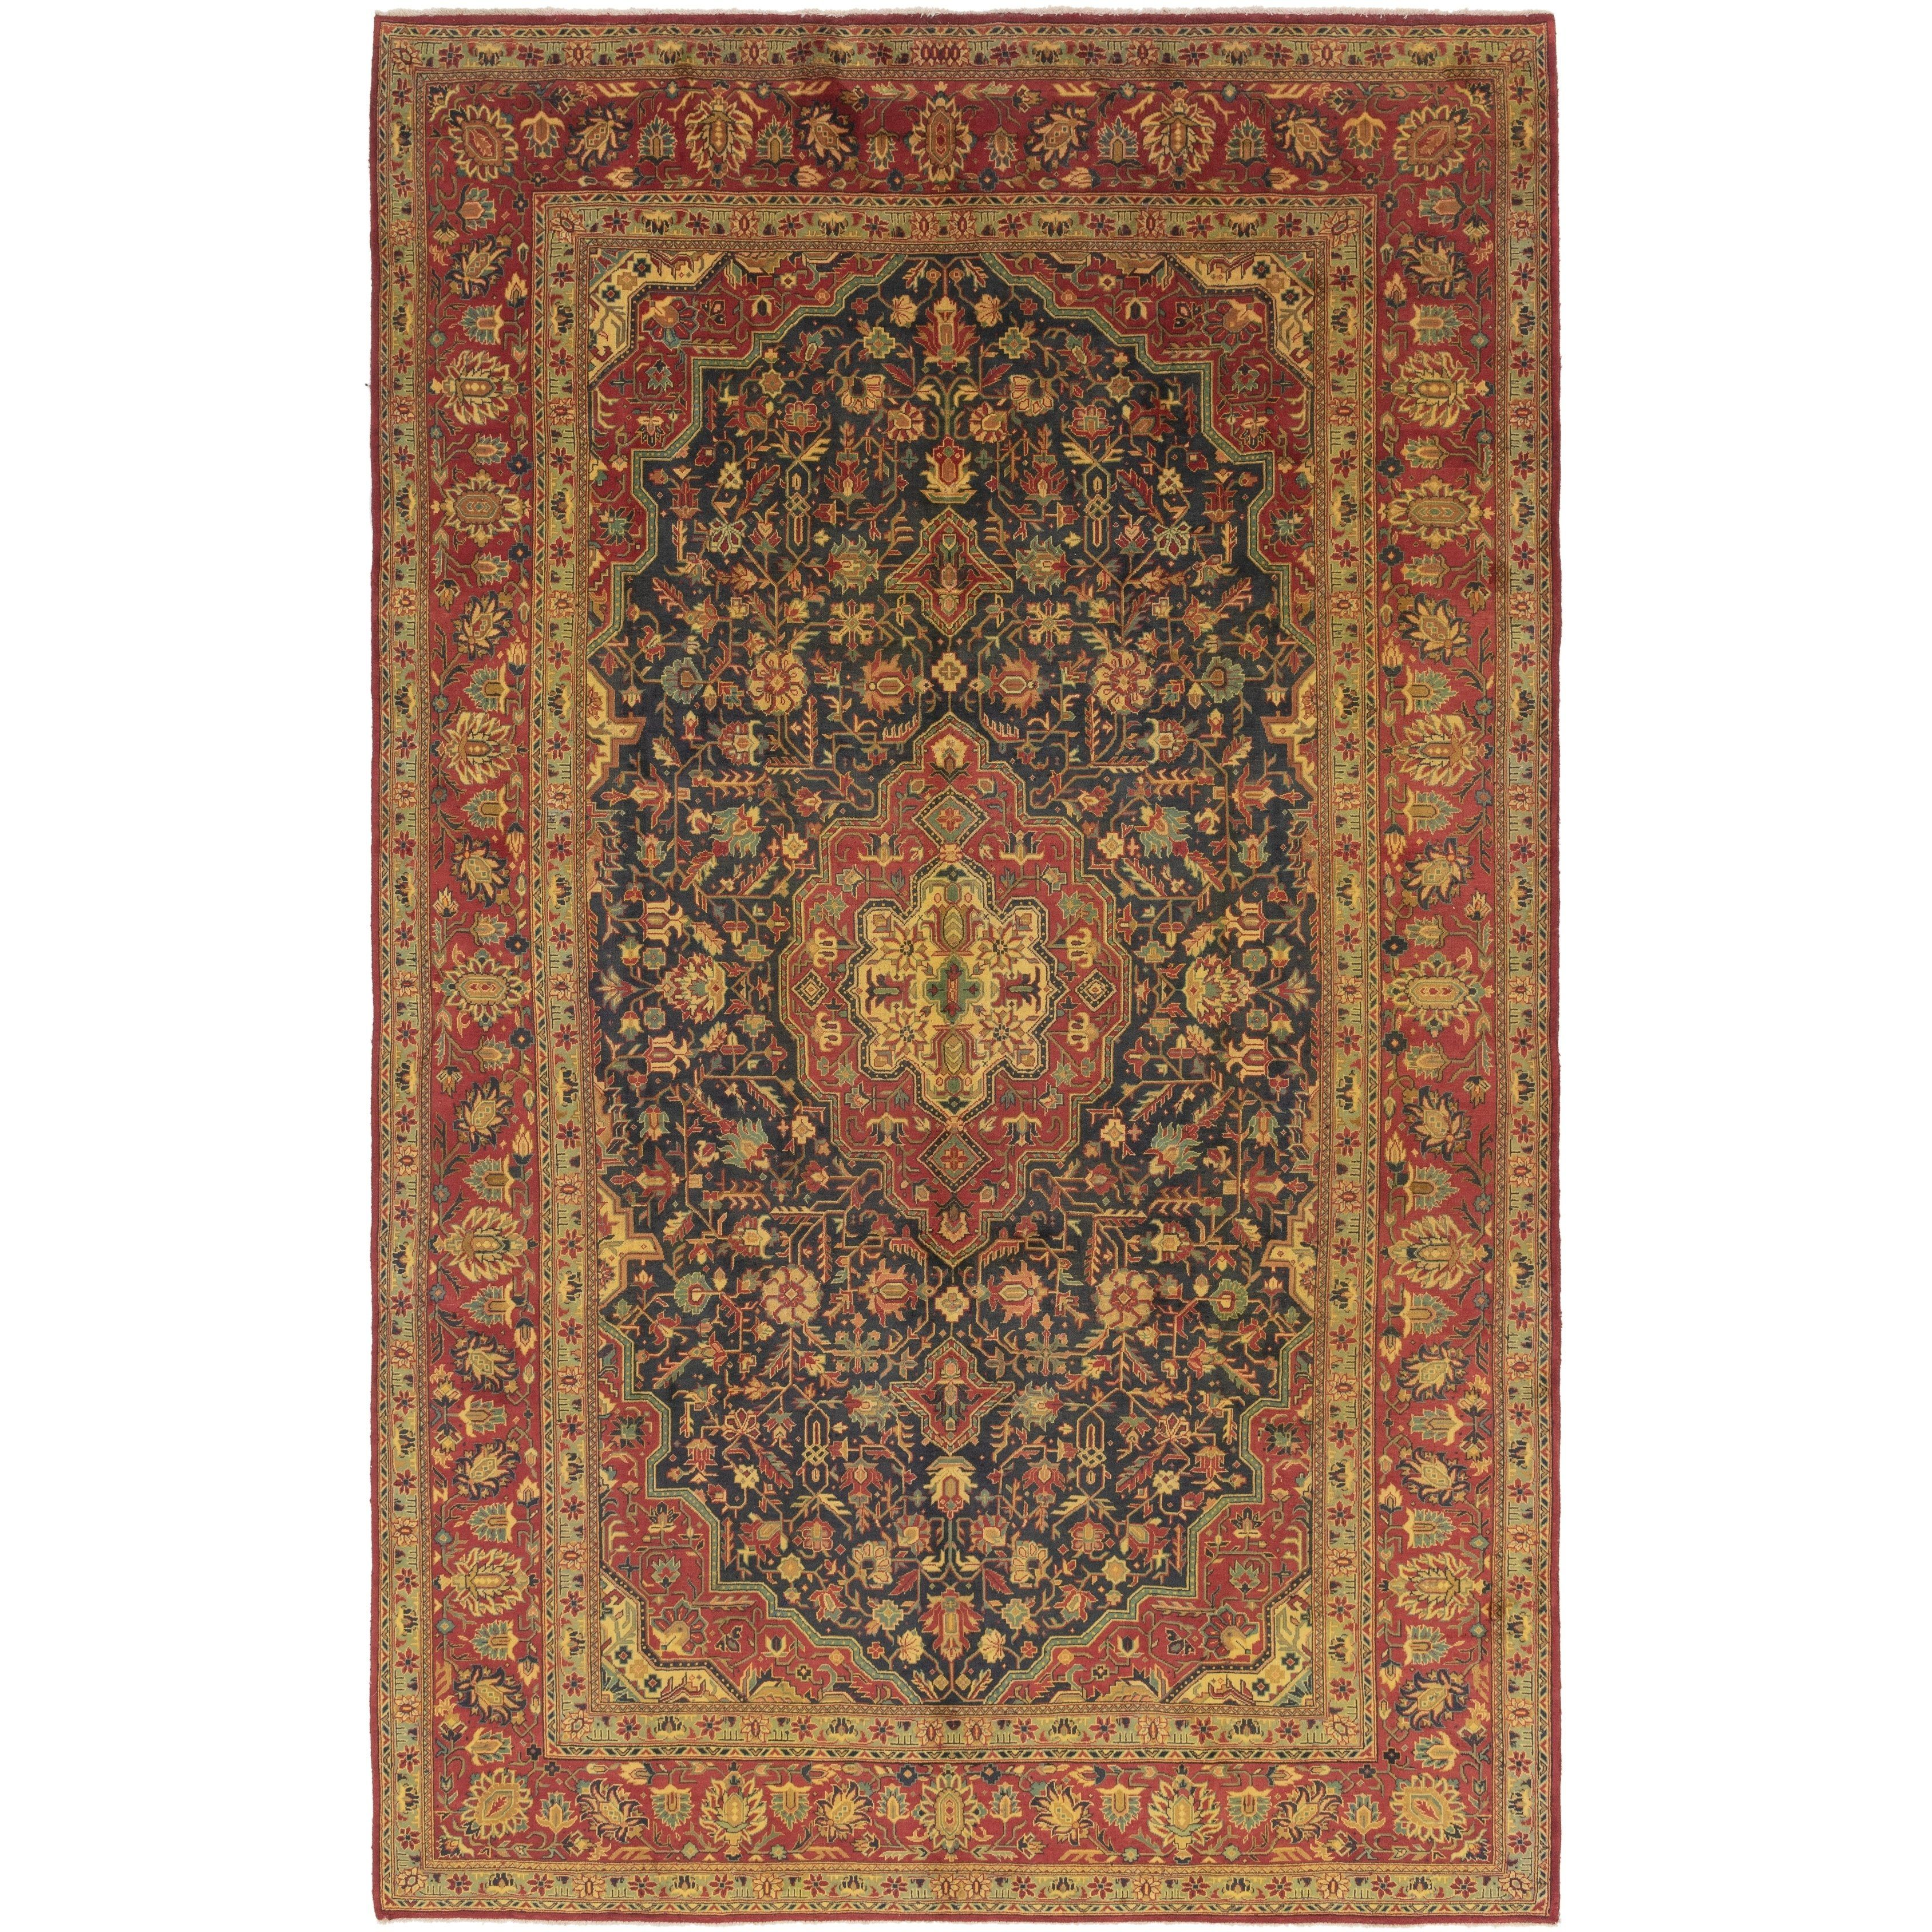 Refurbished Hand Knotted Tabriz Semi Antique Wool Area Rug 9 10